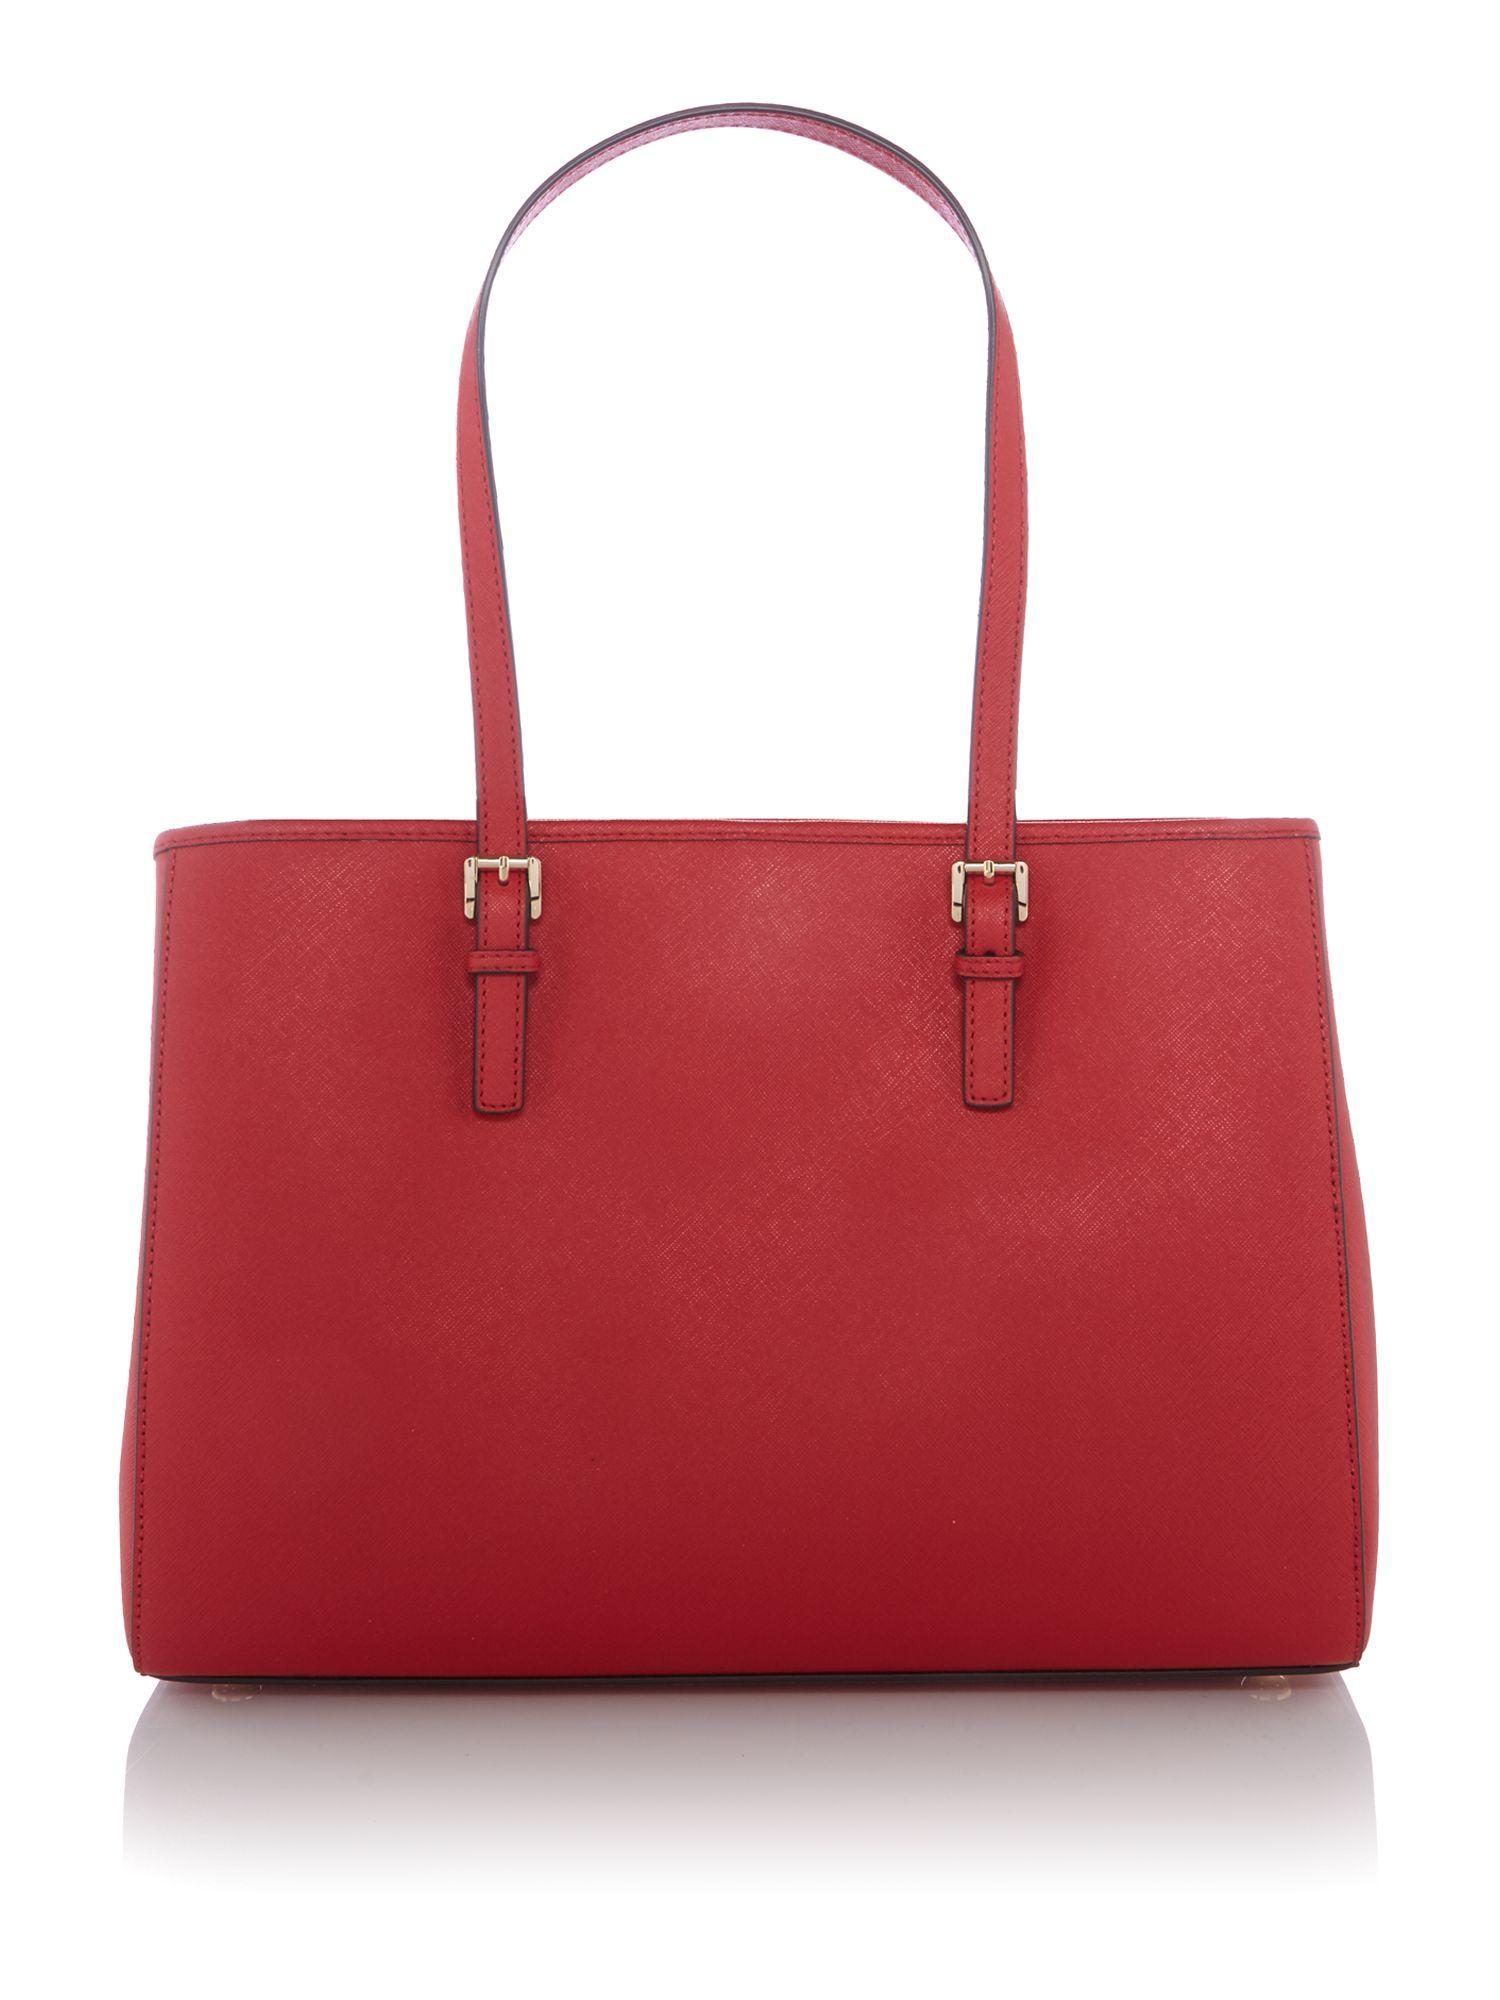 Michael Kors Leather Jetset Travel Tote in Red